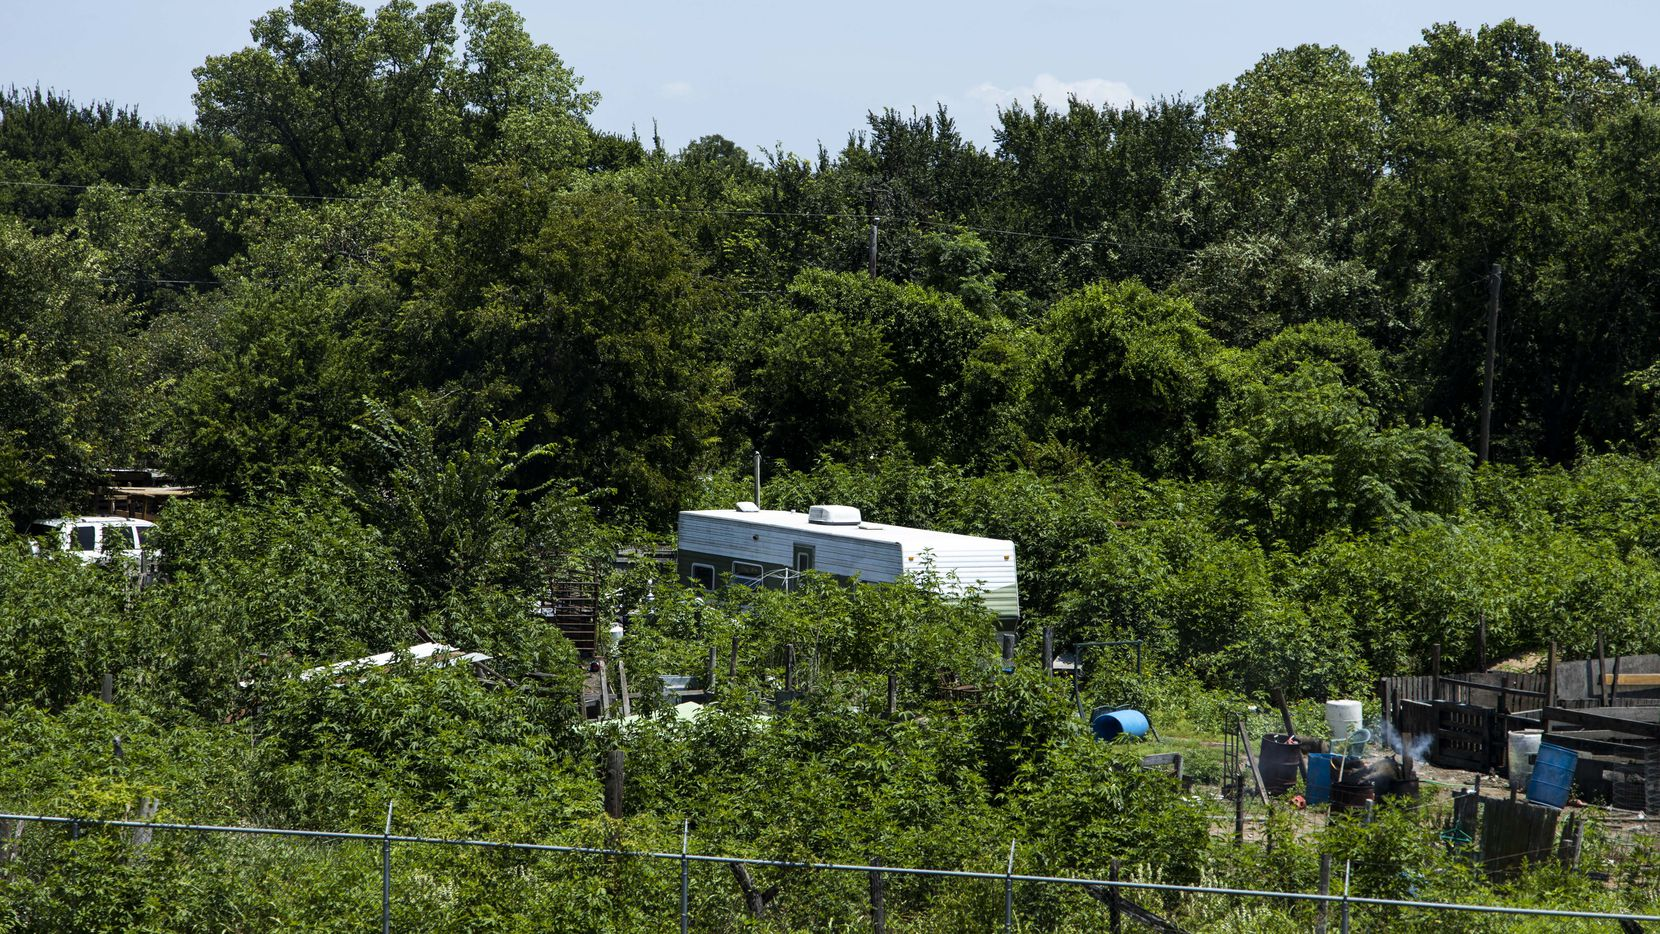 A mobile home sits amid thick vegetation in Sandbranch, a small unincorporated Dallas County community that lacks potable water. The community is not connected to Dallas' water supply.